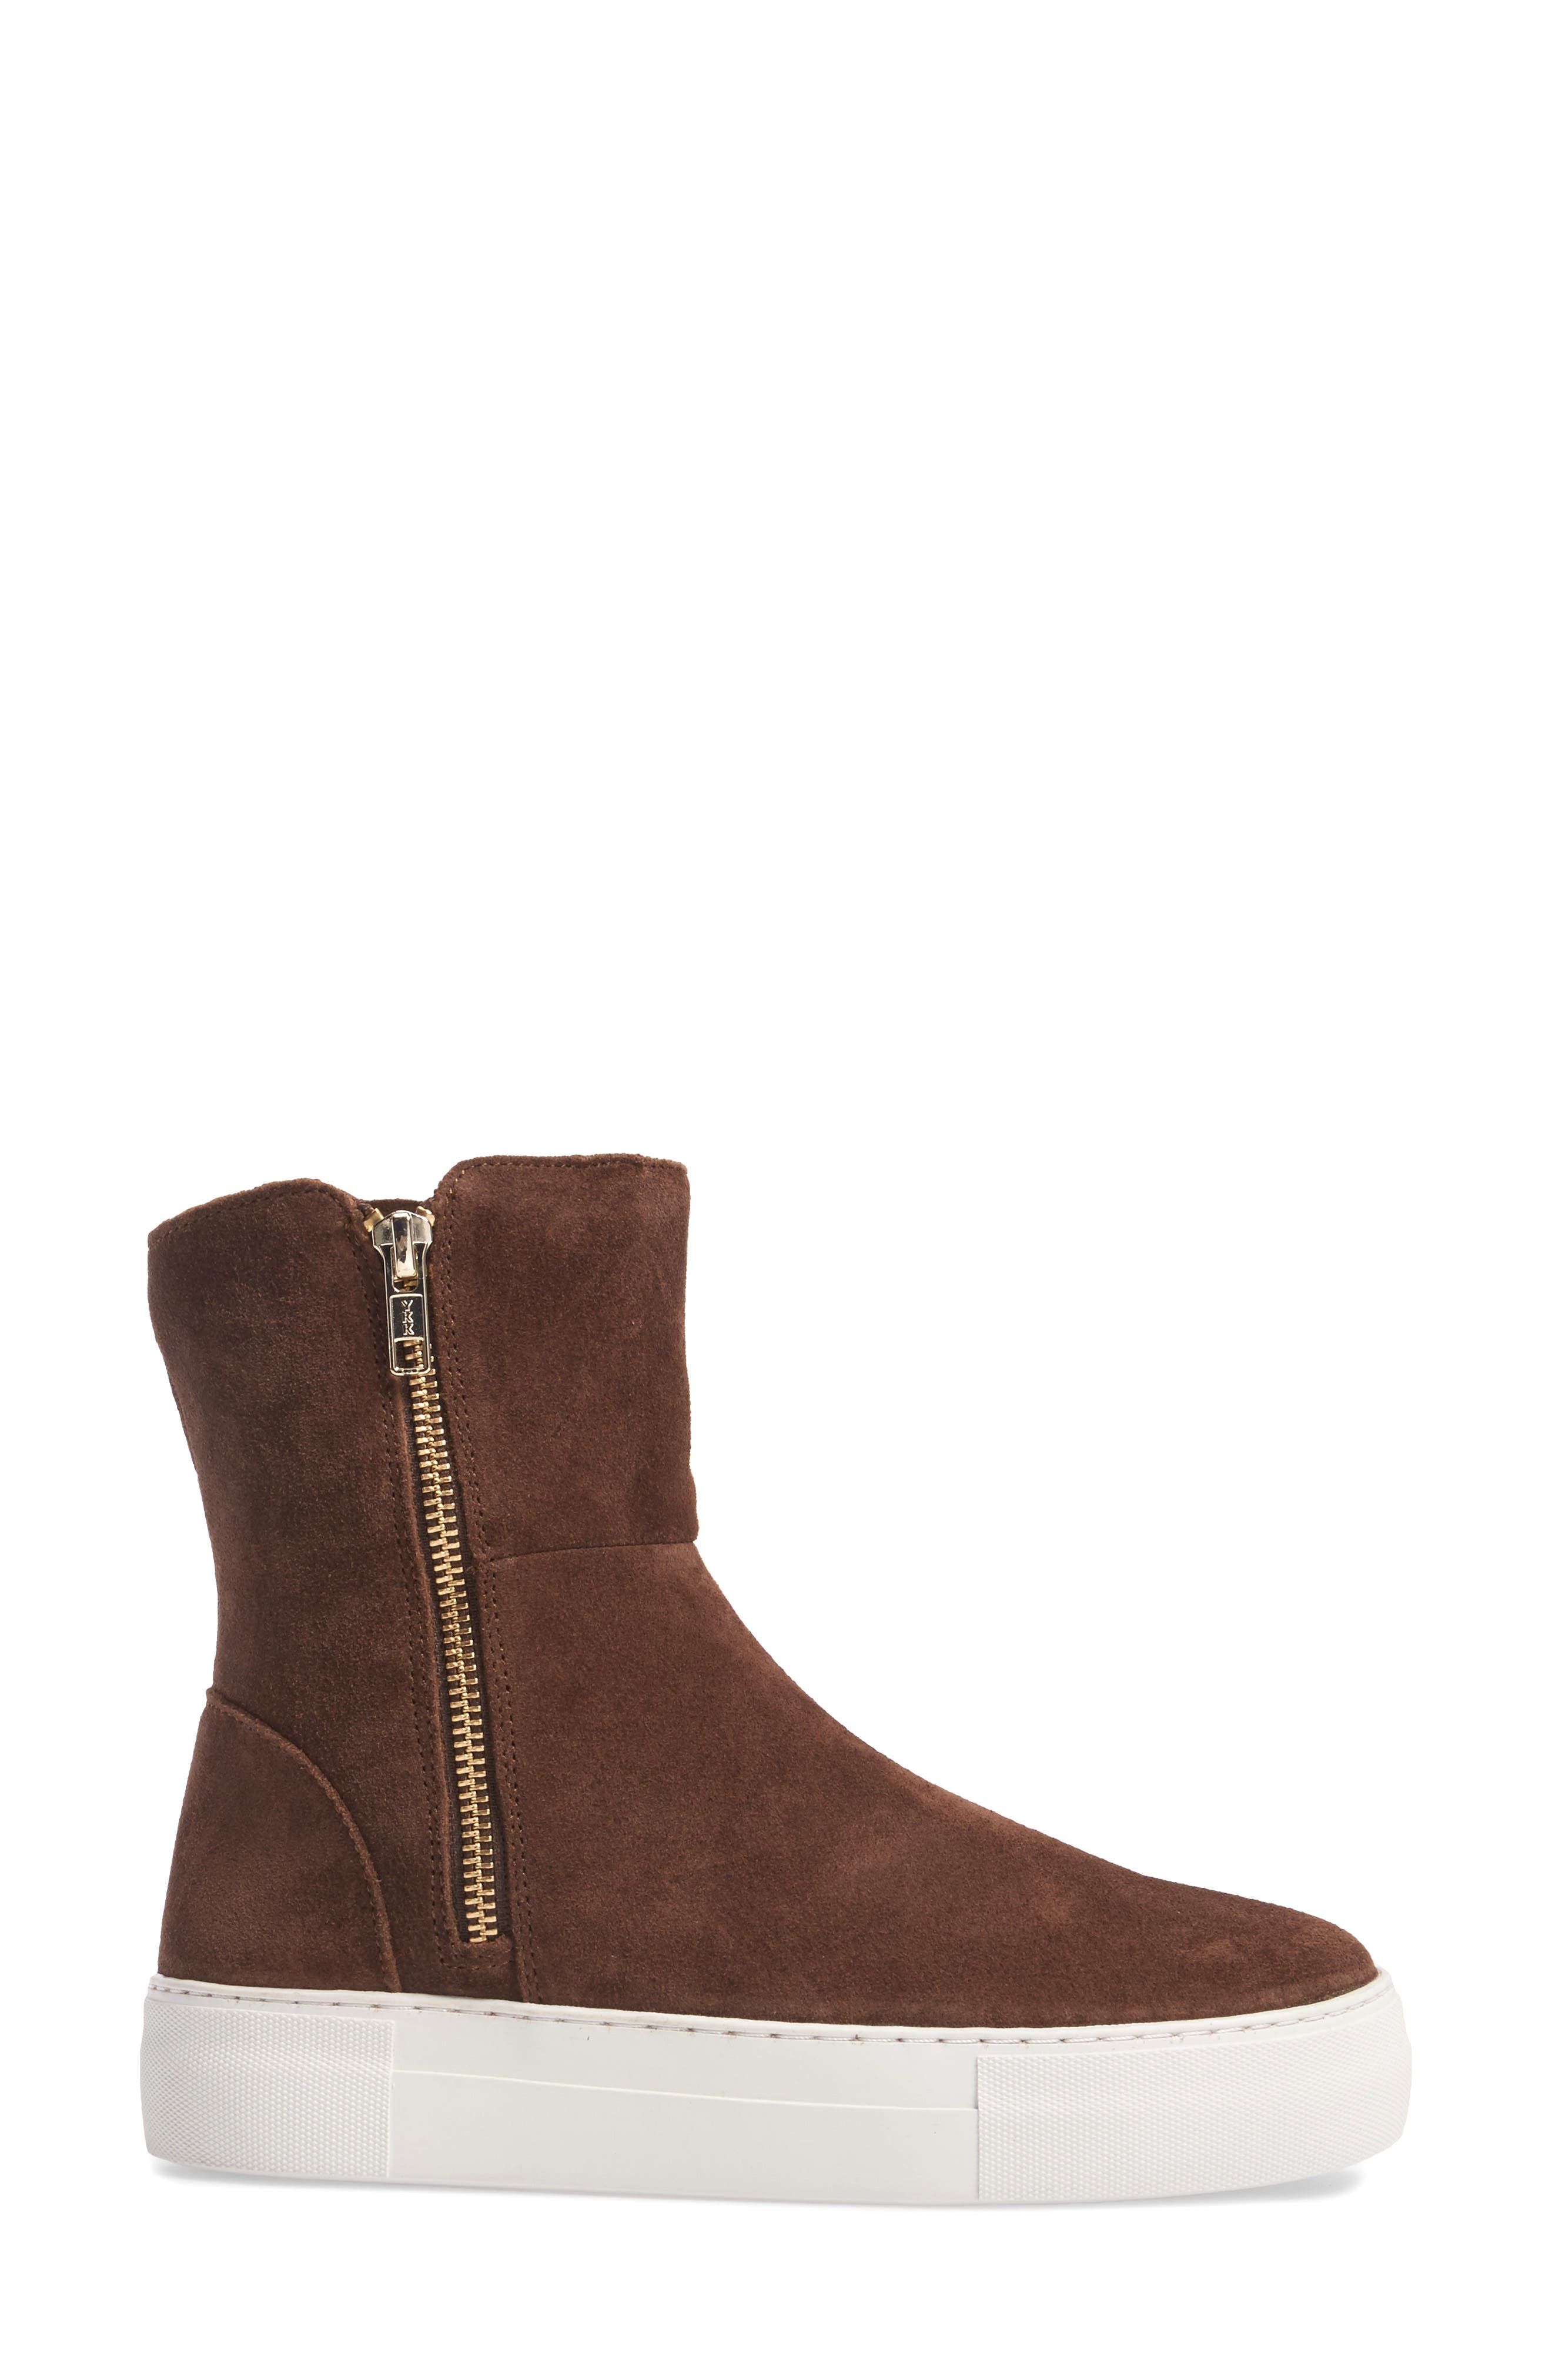 Allie Faux Fur Lined Platform Boot,                             Alternate thumbnail 3, color,                             BROWN SUEDE